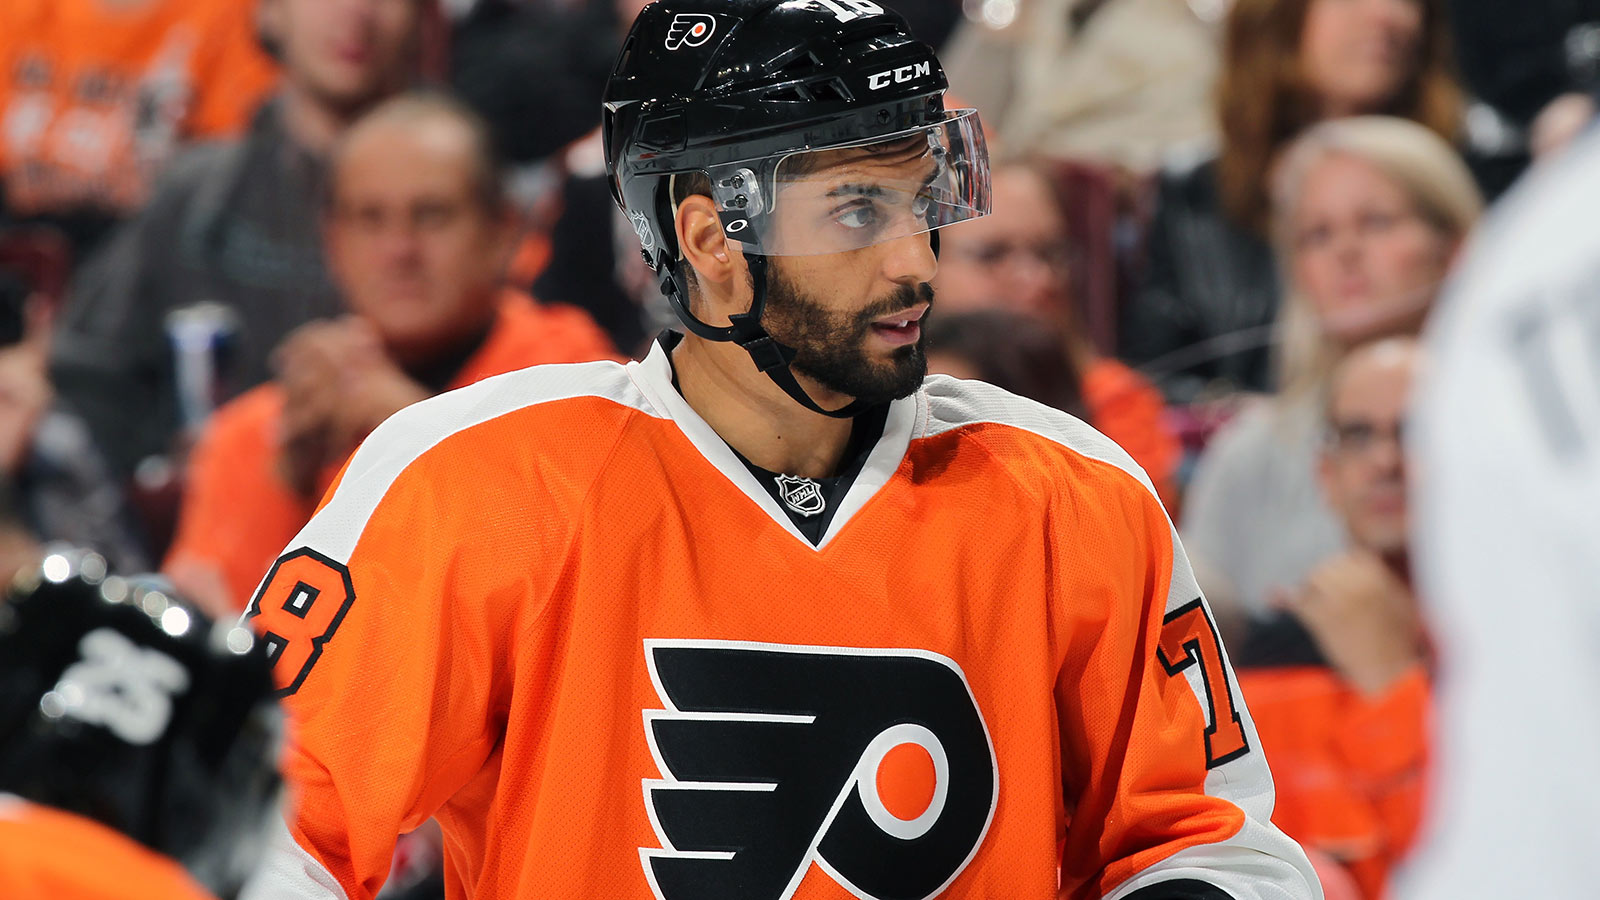 Paris attacks hit home for Flyers' Bellemare